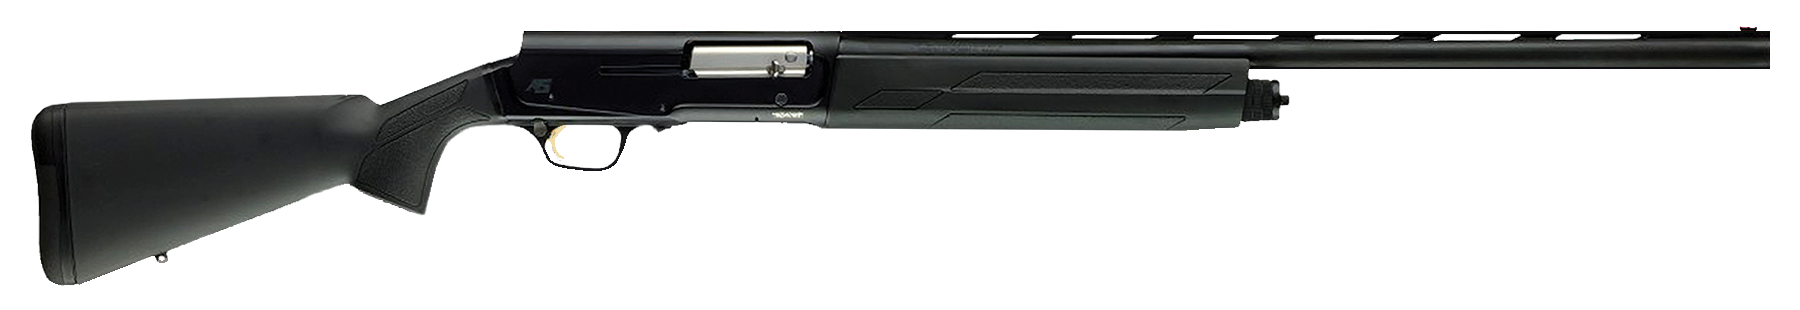 Browning A5 Stalker Semi-Auto Shotgun 3.5'' 12 Gauge 28'' Black Aluminum Alloy - Synthetic - Black